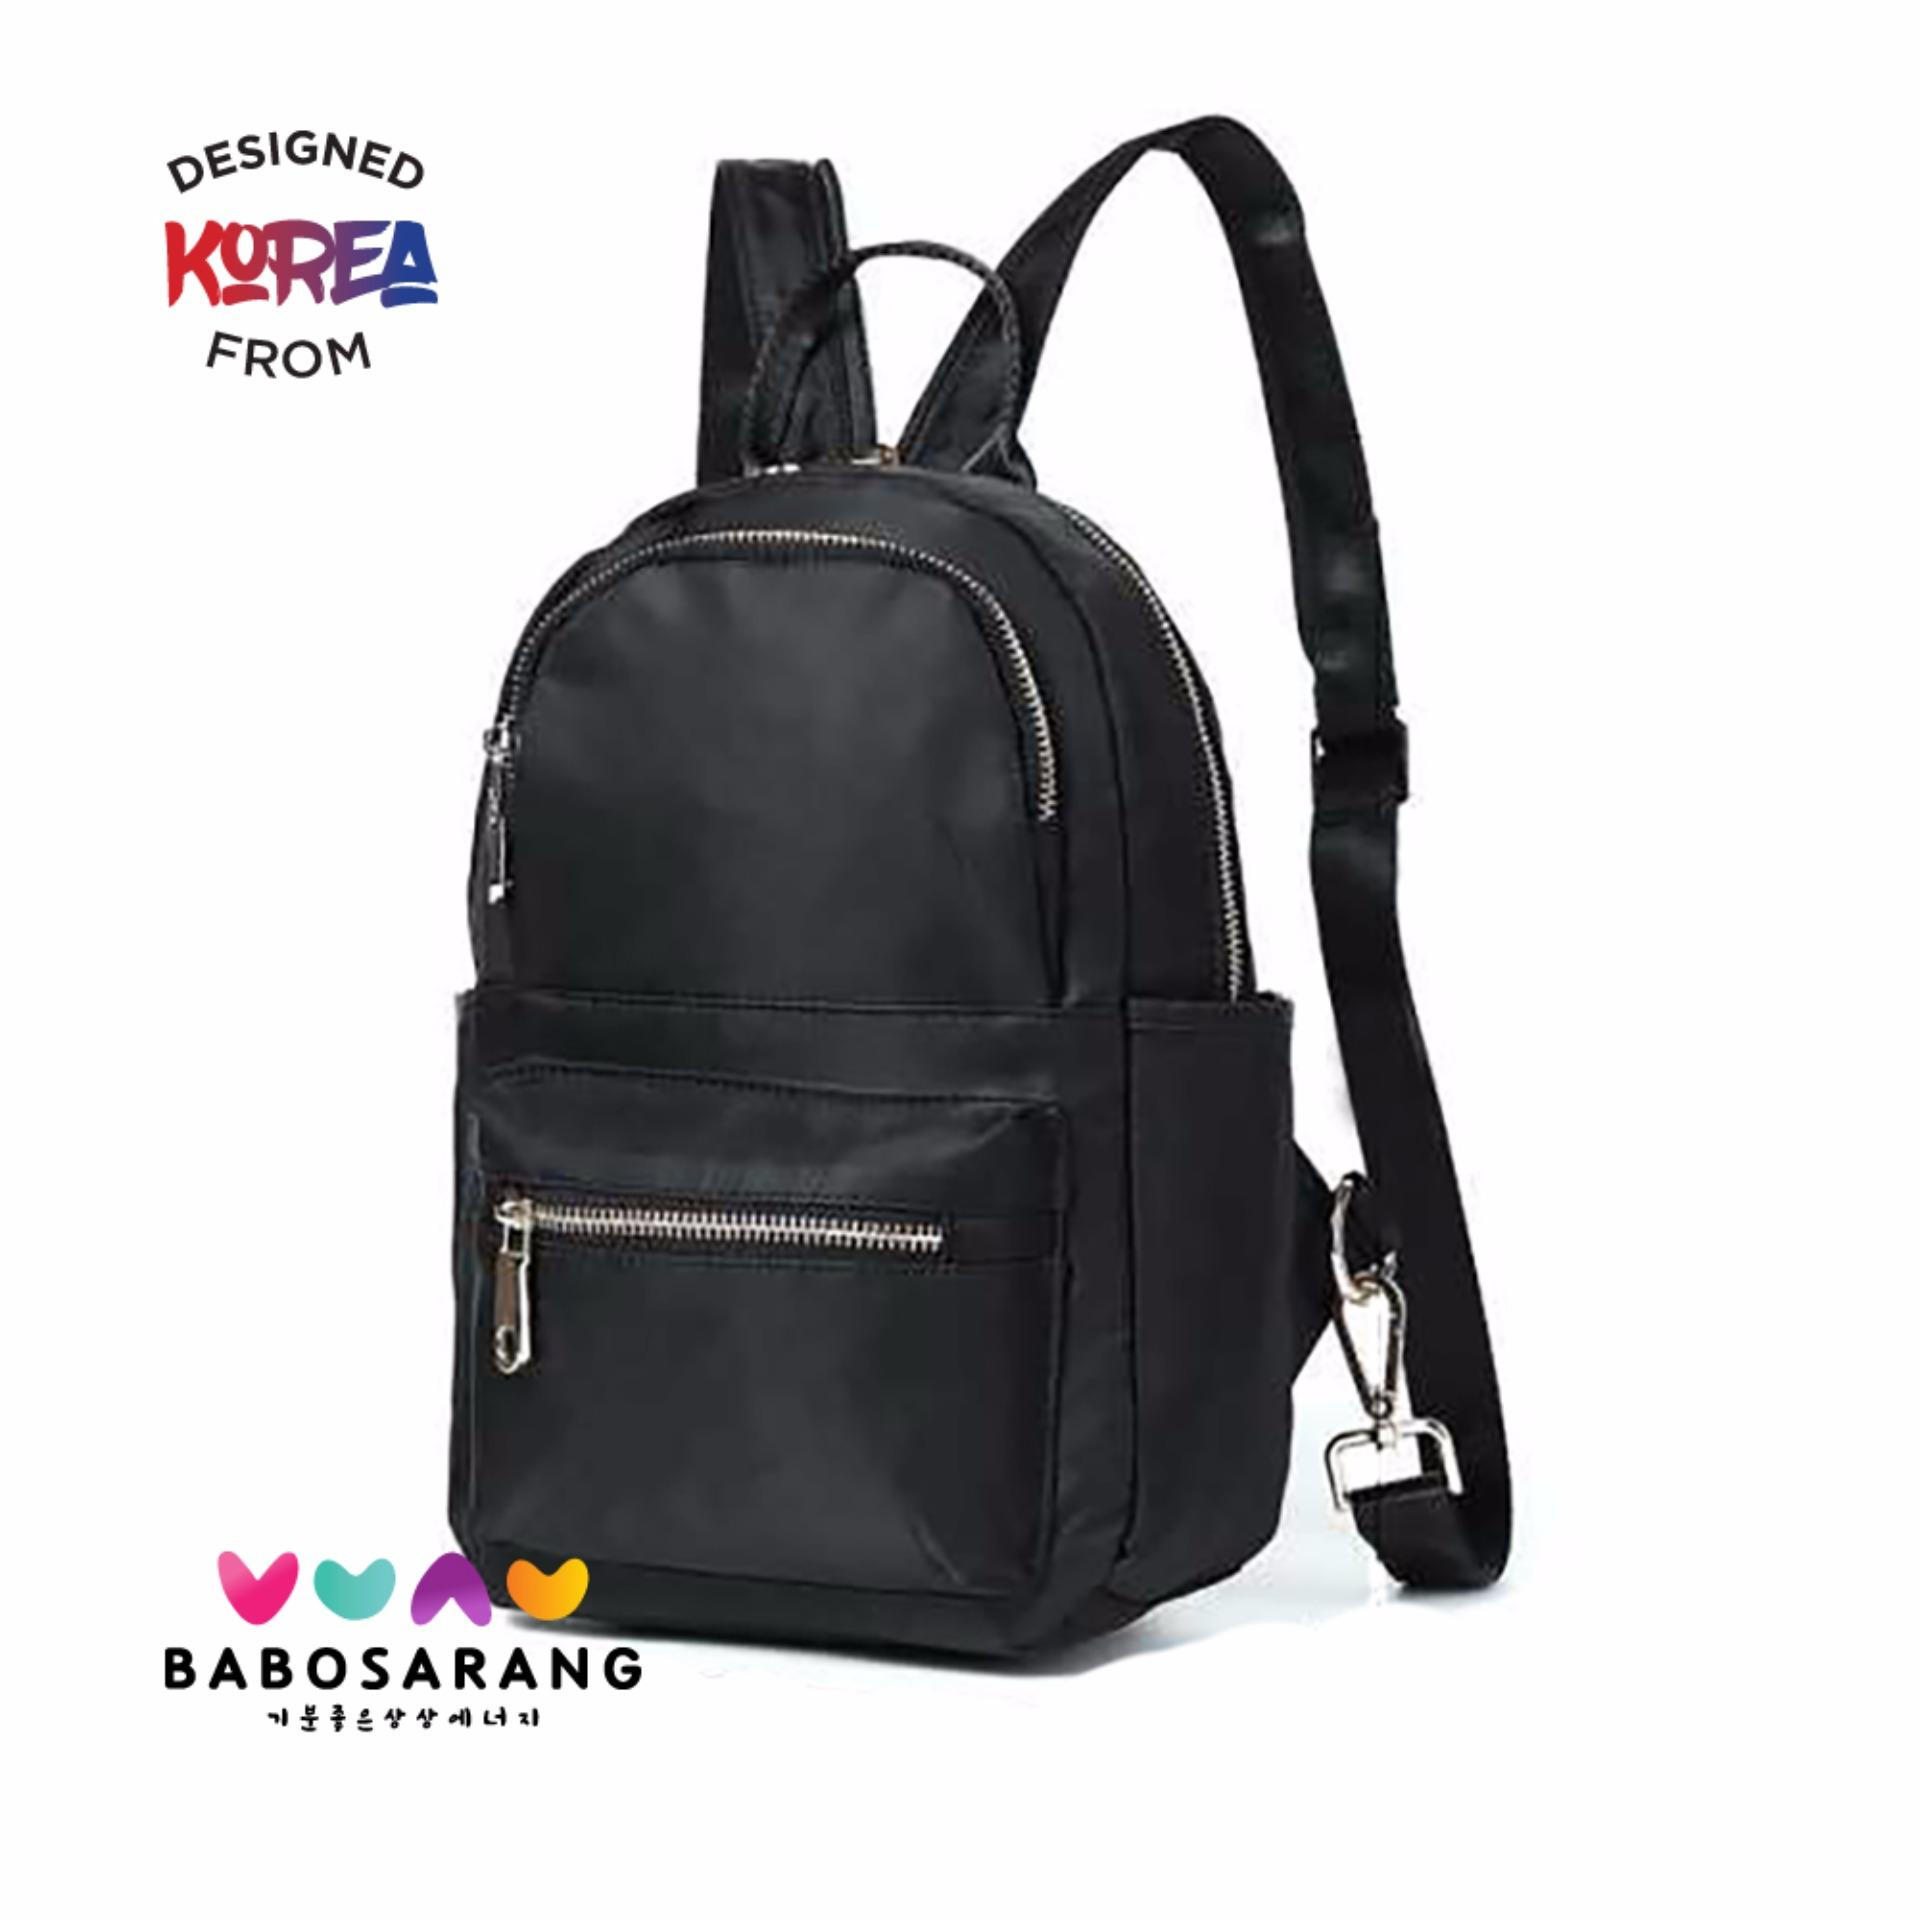 Miliki Segera Korean Fashion Style Babosarang Tas Ransel Batam Wanita Backpack Korea Model Fashion Gothic Style Bs2